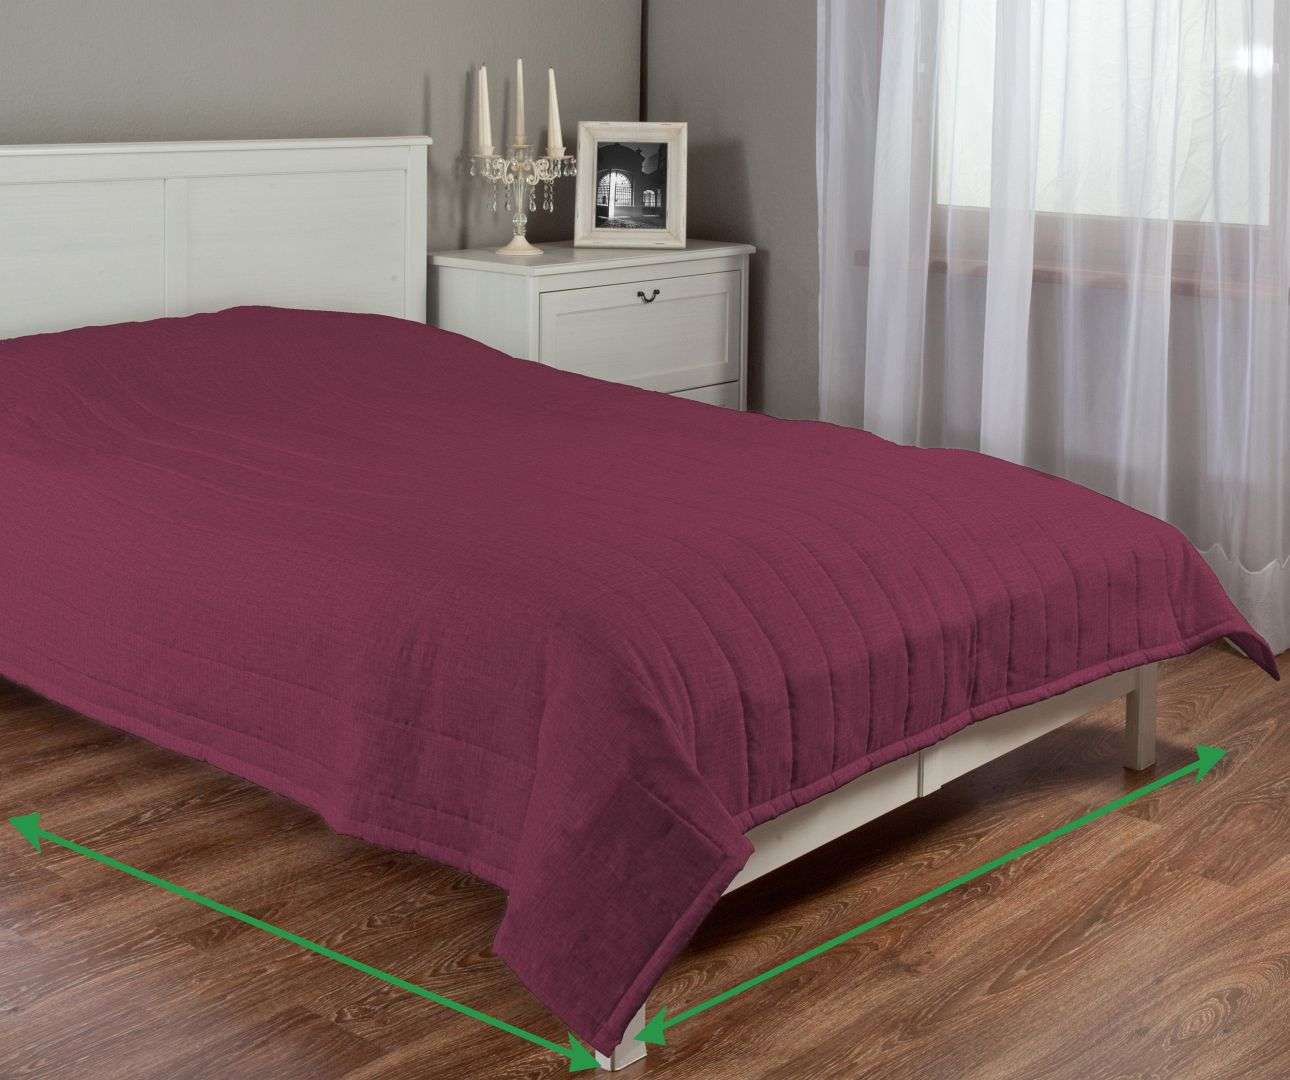 Quilted throw (vertical quilt pattern) in collection Porto, fabric: 160-44